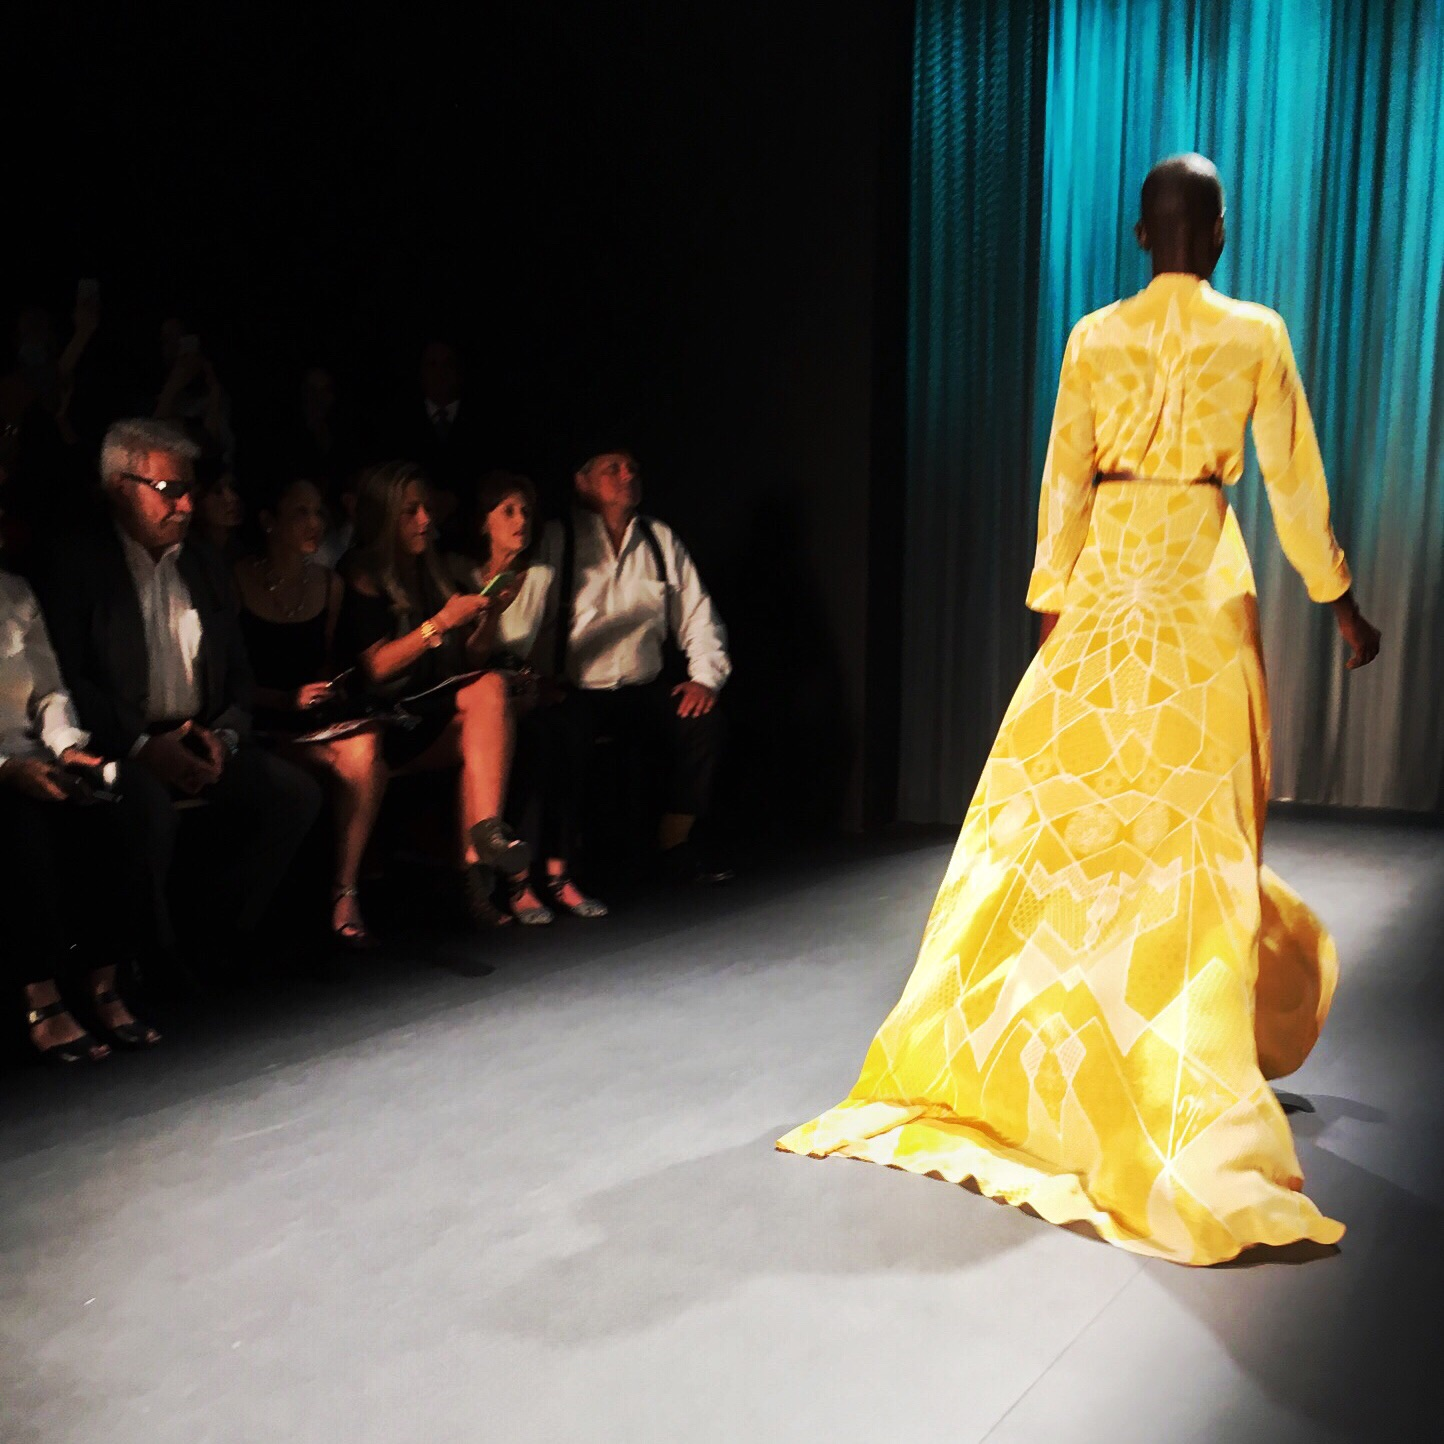 From the back... (Model is wearing a geometric patterned canary yellow gown)